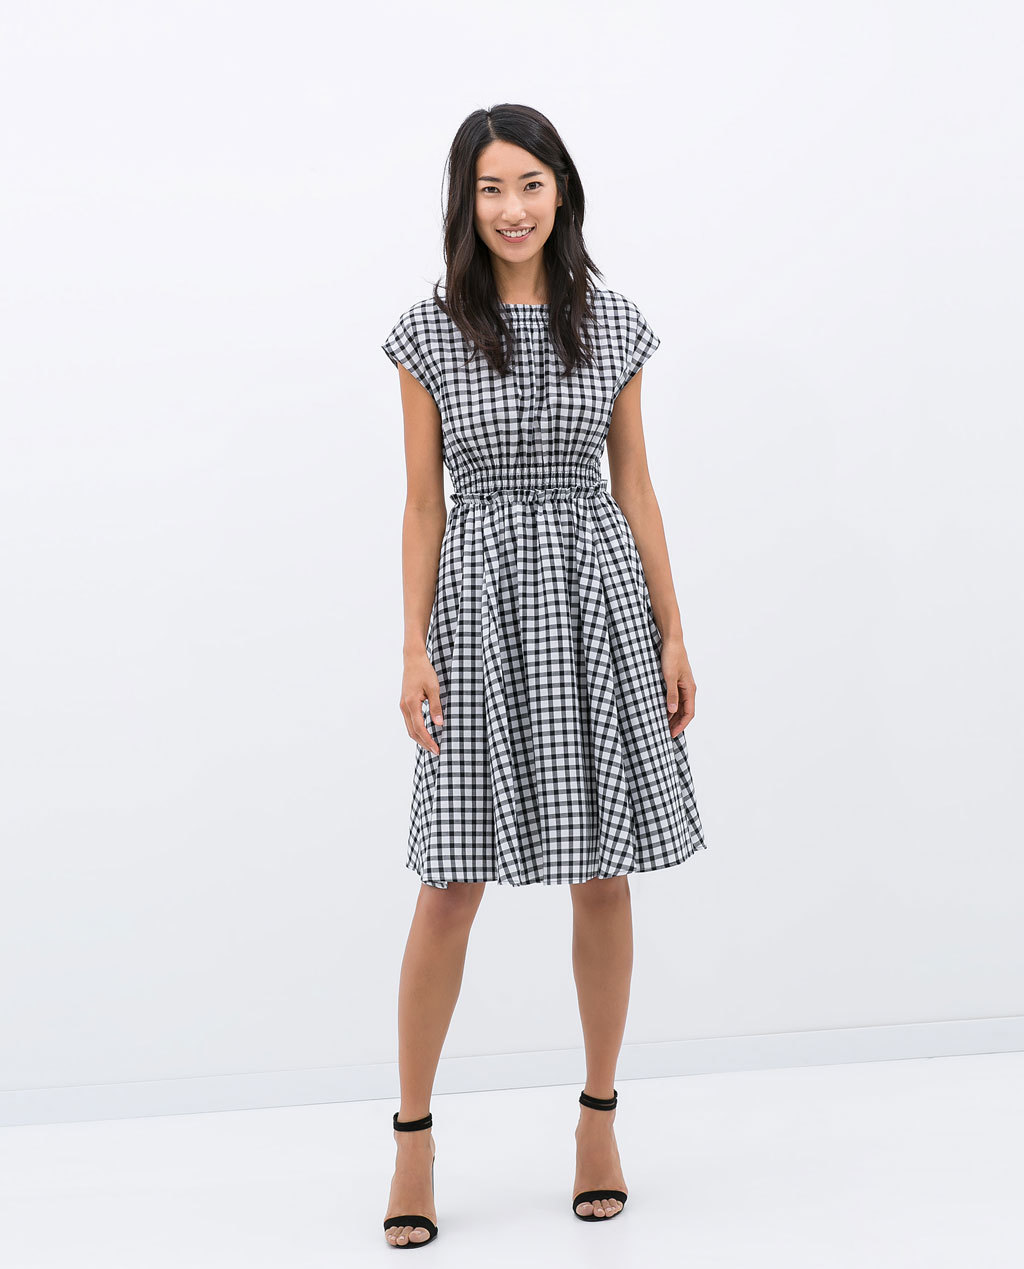 Checkered Dress With Elastic Waist - style: tea dress; neckline: round neck; sleeve style: capped; pattern: checked/gingham; waist detail: elasticated waist; secondary colour: white; predominant colour: black; occasions: casual, occasion, creative work; length: on the knee; fit: fitted at waist & bust; fibres: cotton - 100%; hip detail: adds bulk at the hips; sleeve length: short sleeve; texture group: cotton feel fabrics; pattern type: fabric; pattern size: big & busy; season: s/s 2014; trends: monochrome